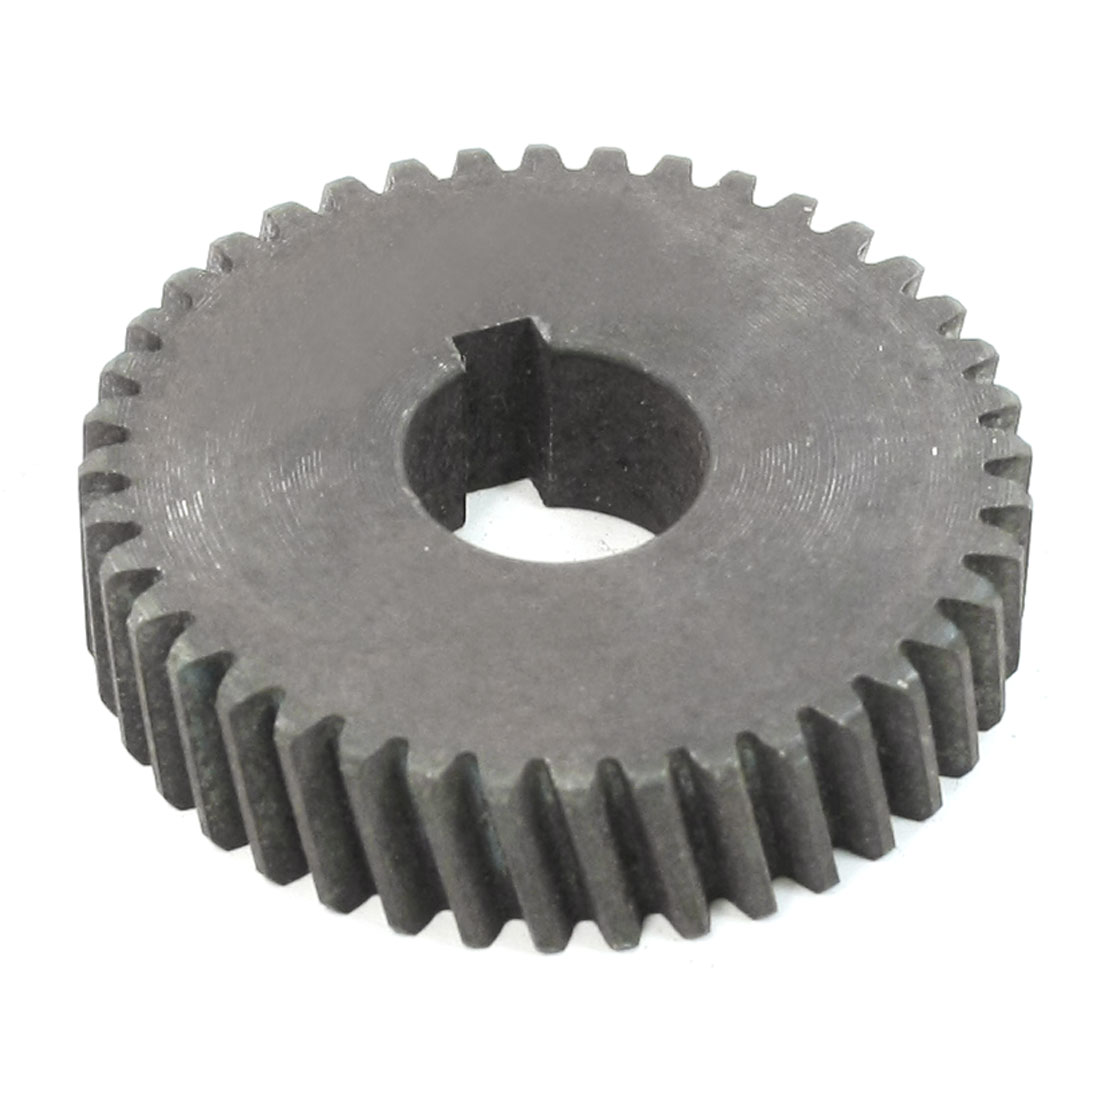 Power Tool Spare Part 54mm Helical Gear Wheel for Ryobi 350 Electric Sander